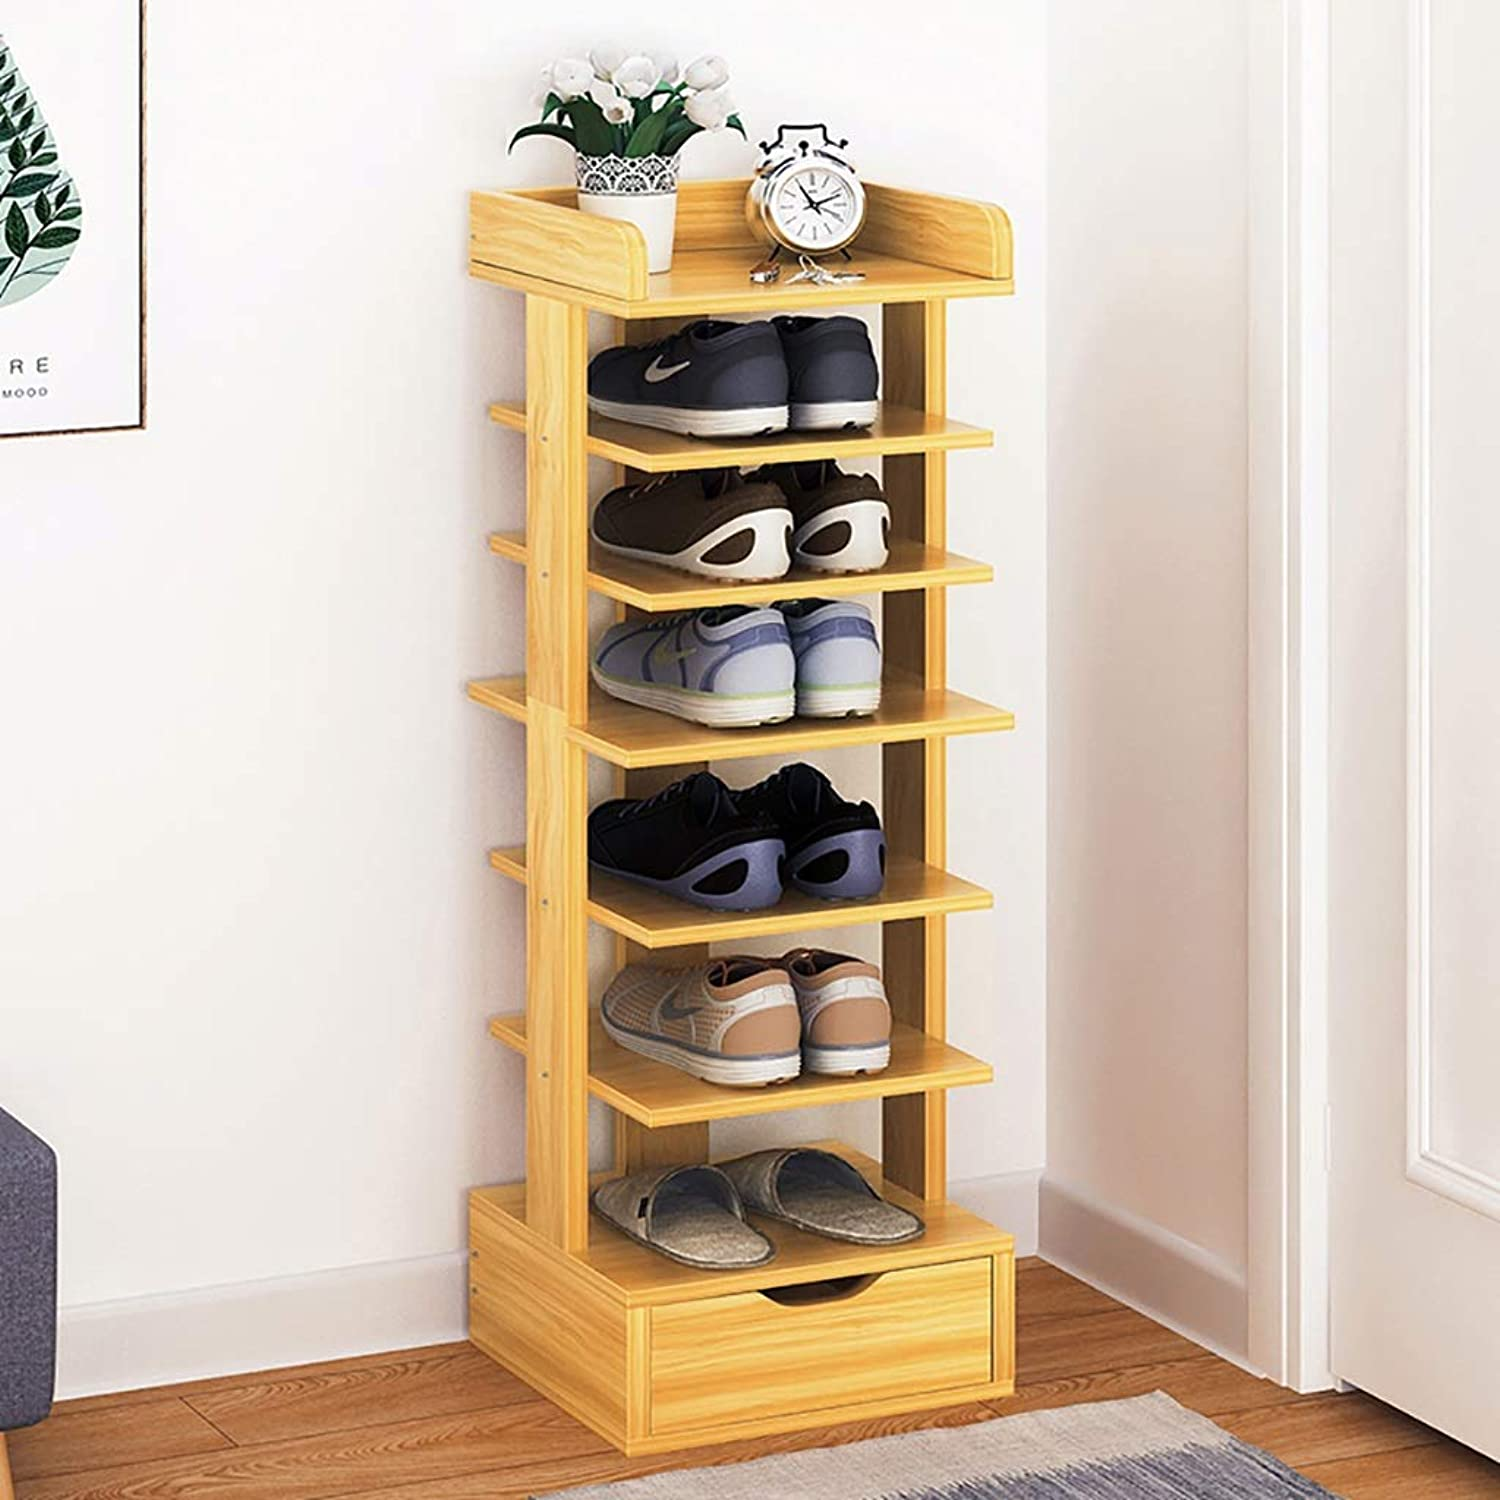 4 5 6 7 8-layer shoes Rack Shelf Flower Stand Bookshelf Storage Shelf shoes Cabinet Multifunction Household Doorway Entrance Living Room Space Saving (color   B, Size   27  24  106CM)